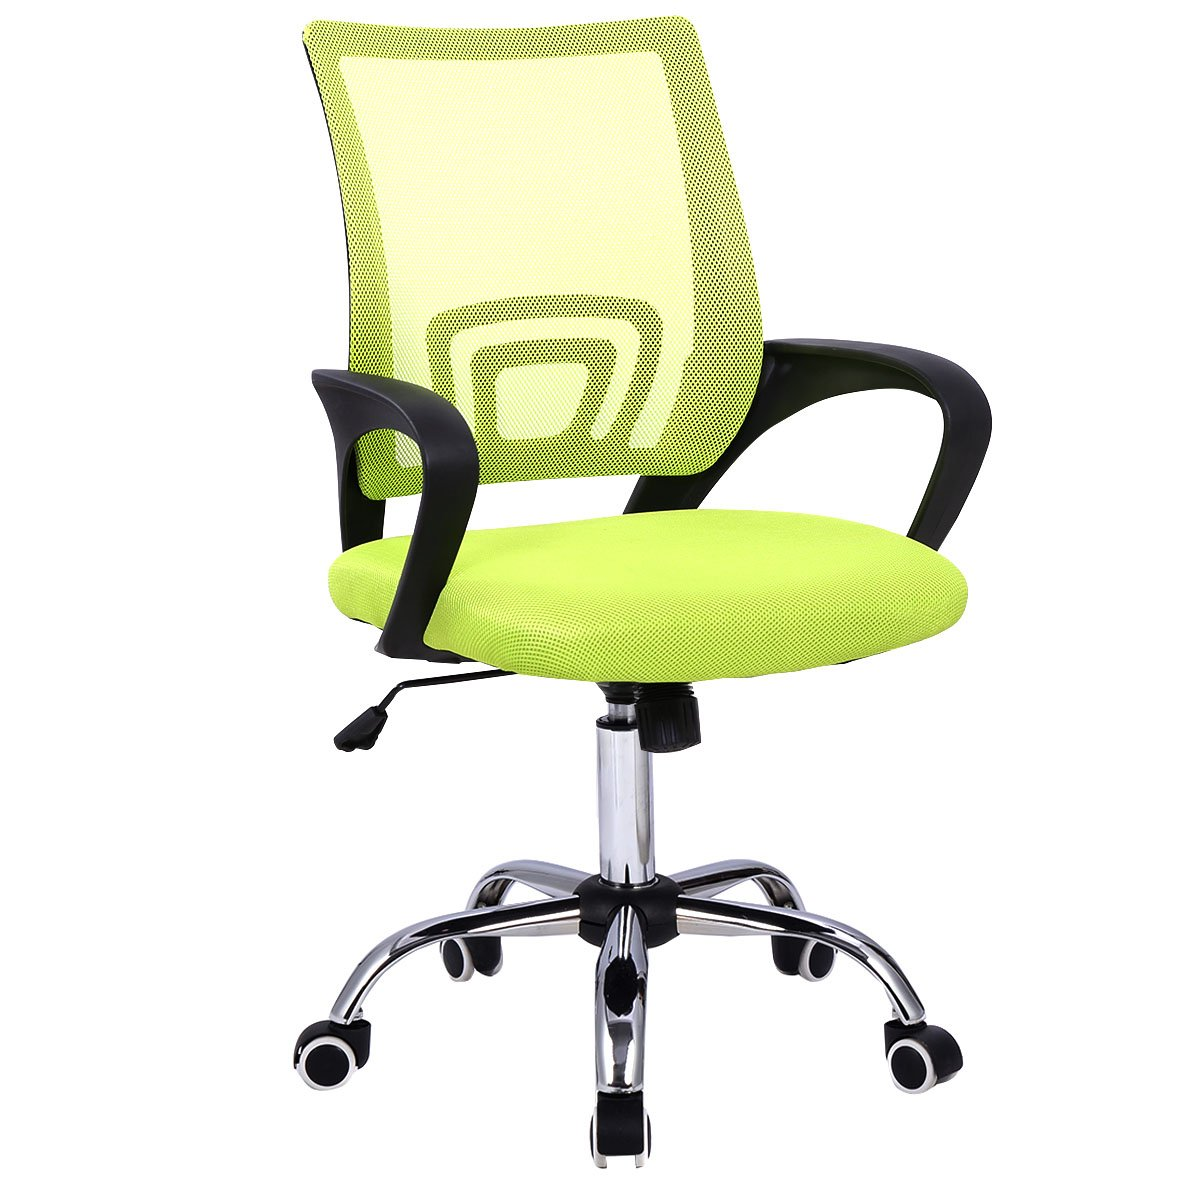 Giantex Modern Mesh Mid-Back Office Chair Computer Desk Task Ergonomic Swivel Green